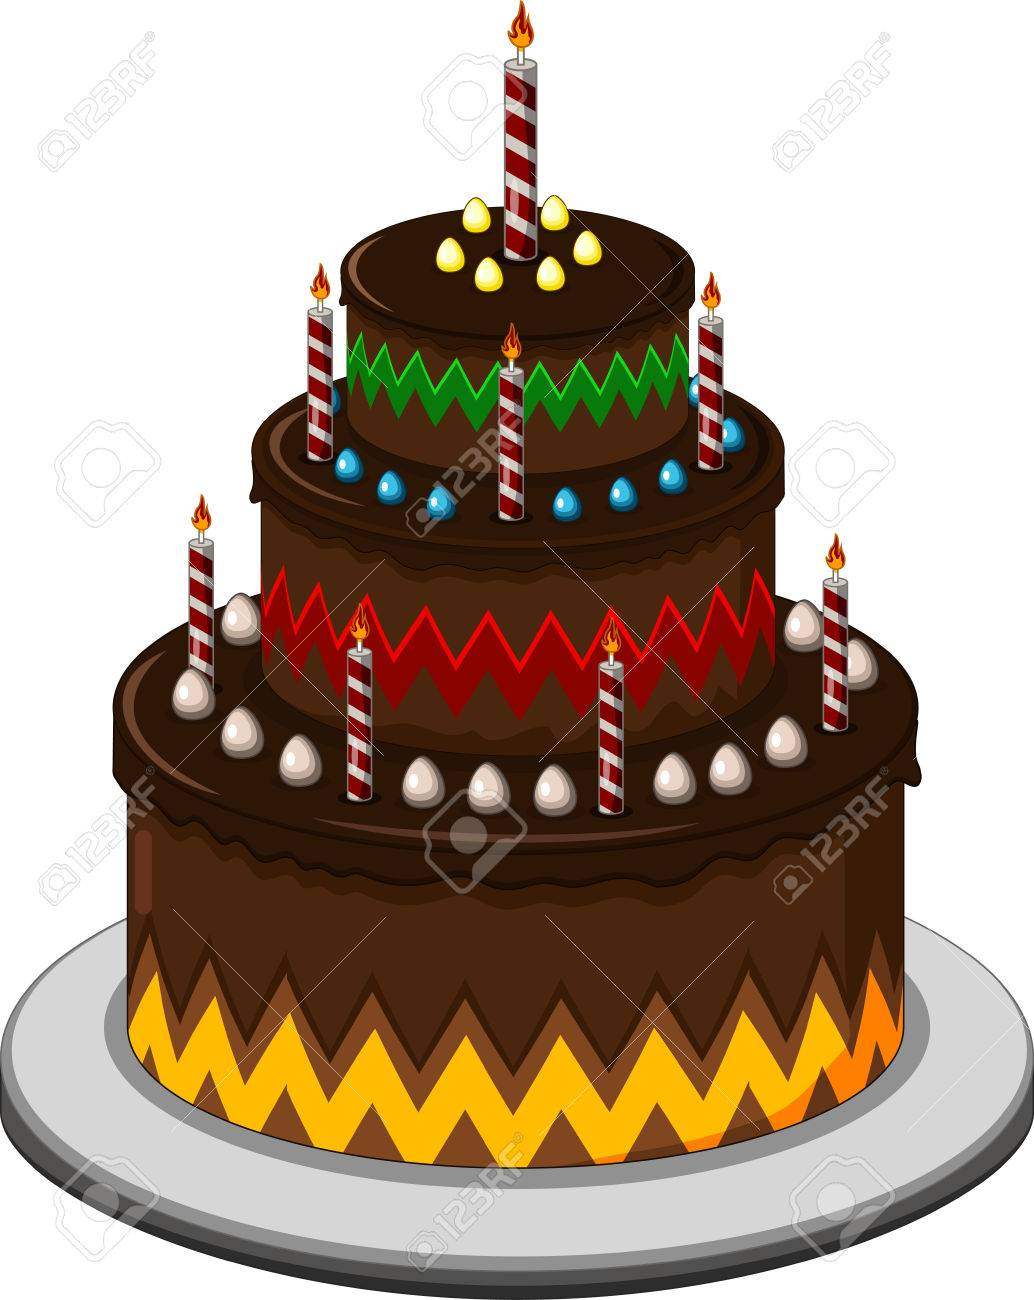 Peachy Birthday Cake For You Design Royalty Free Cliparts Vectors And Personalised Birthday Cards Veneteletsinfo